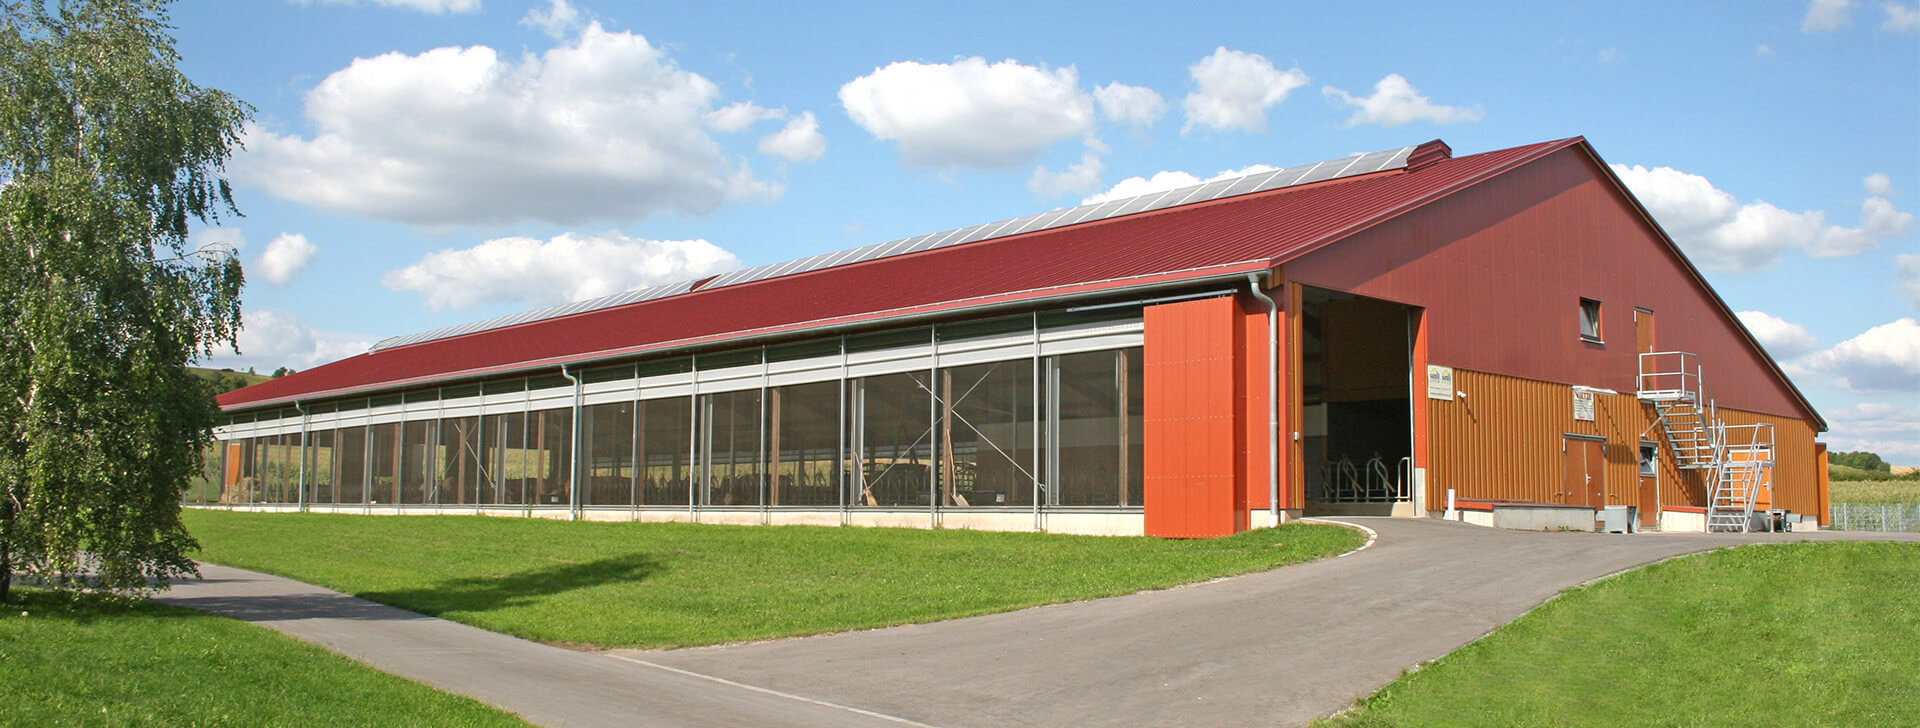 own pay rent wildcat cash high your can metal barns our livestock backyard cattle more sheds all offers quality storage for or cache you to and farm playsets